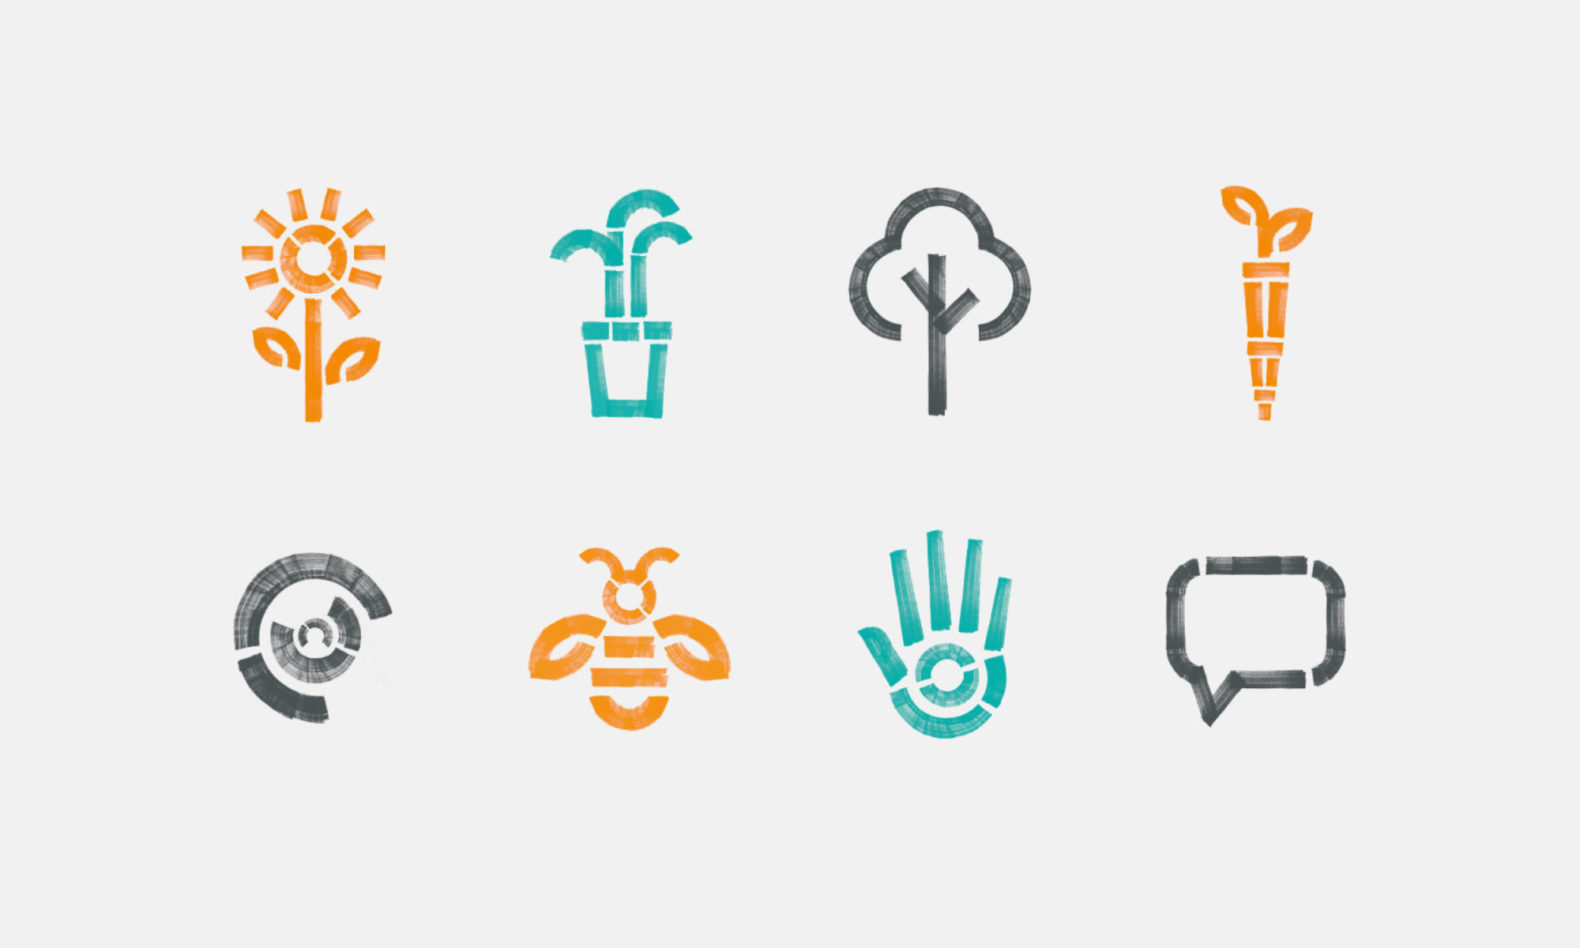 Custom icons for the Global Generation branding.